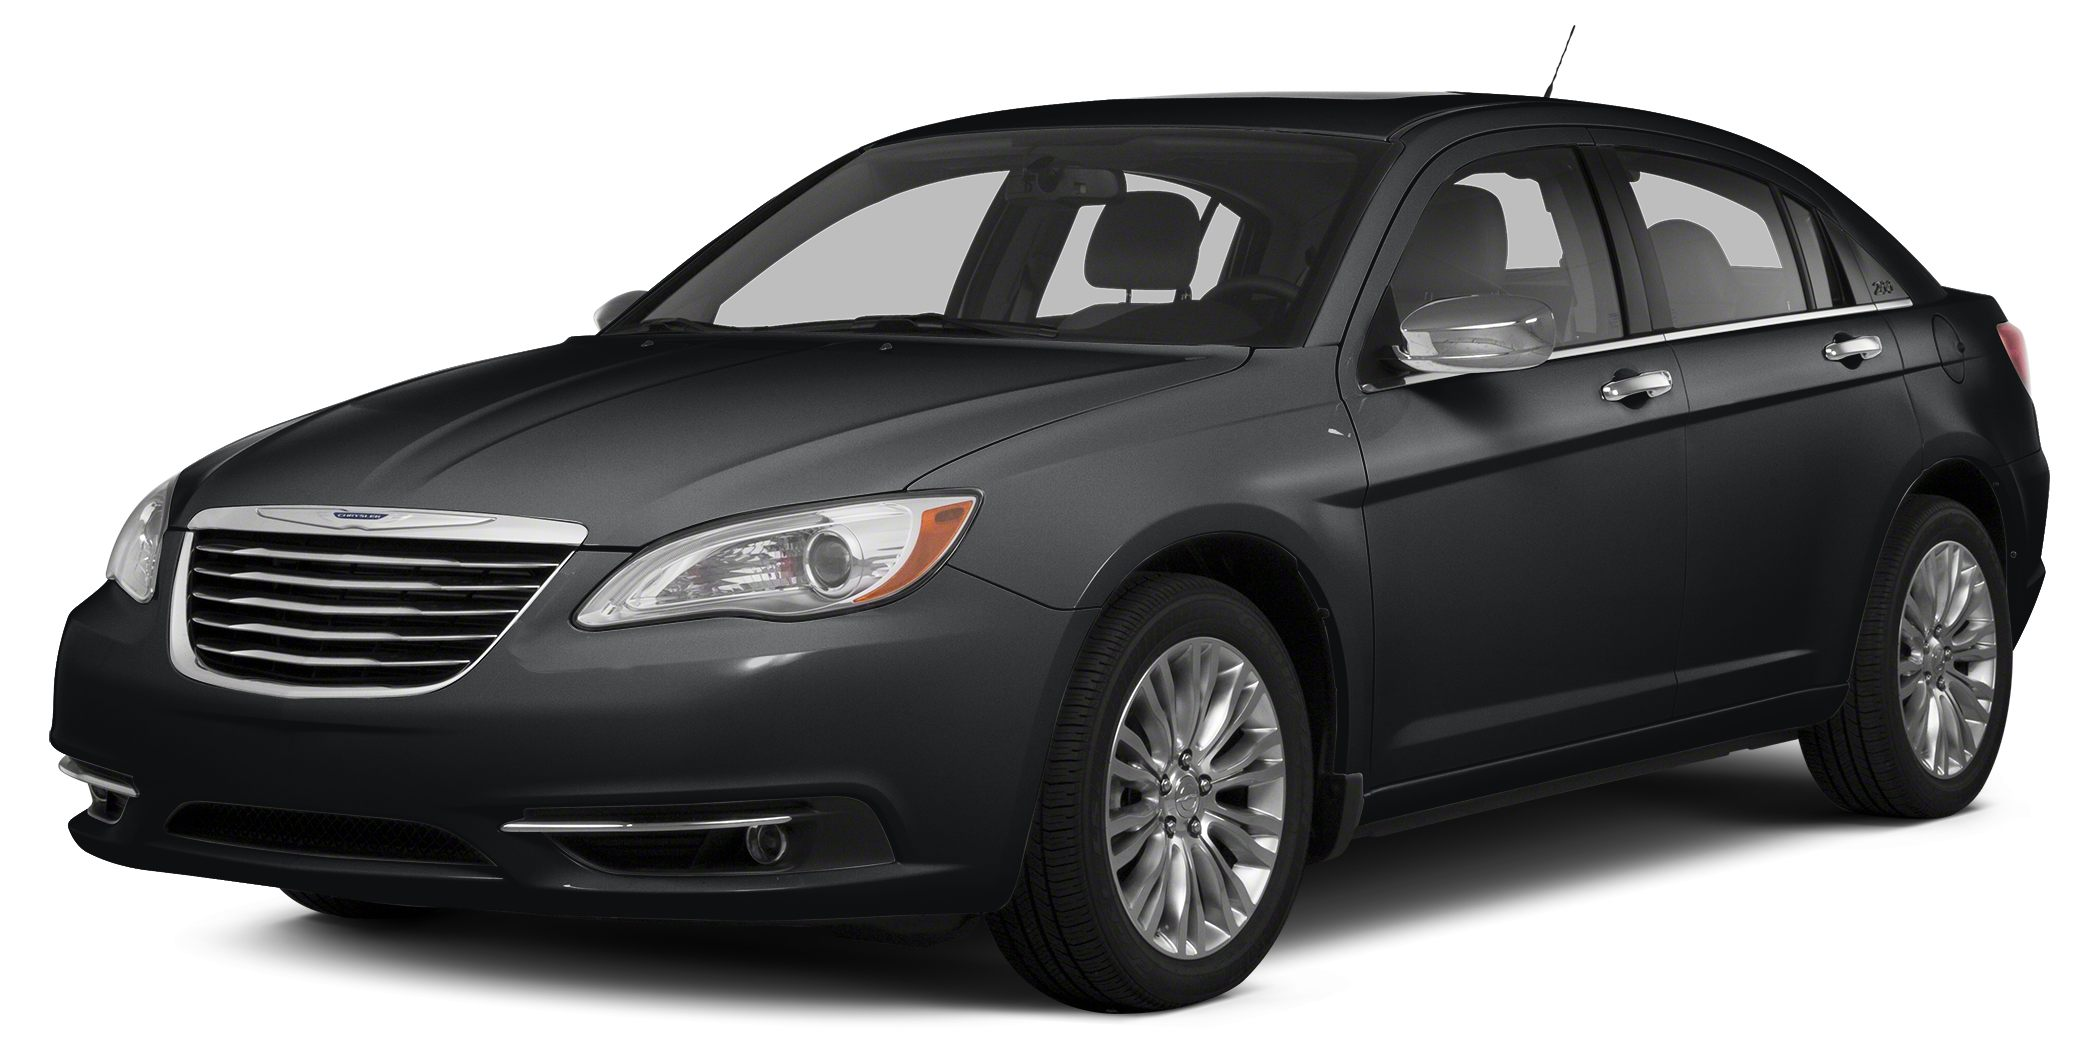 2014 Chrysler 200 Touring CARFAX 1-Owner Touring trim PRICED TO MOVE 1000 below Kelley Blue Boo